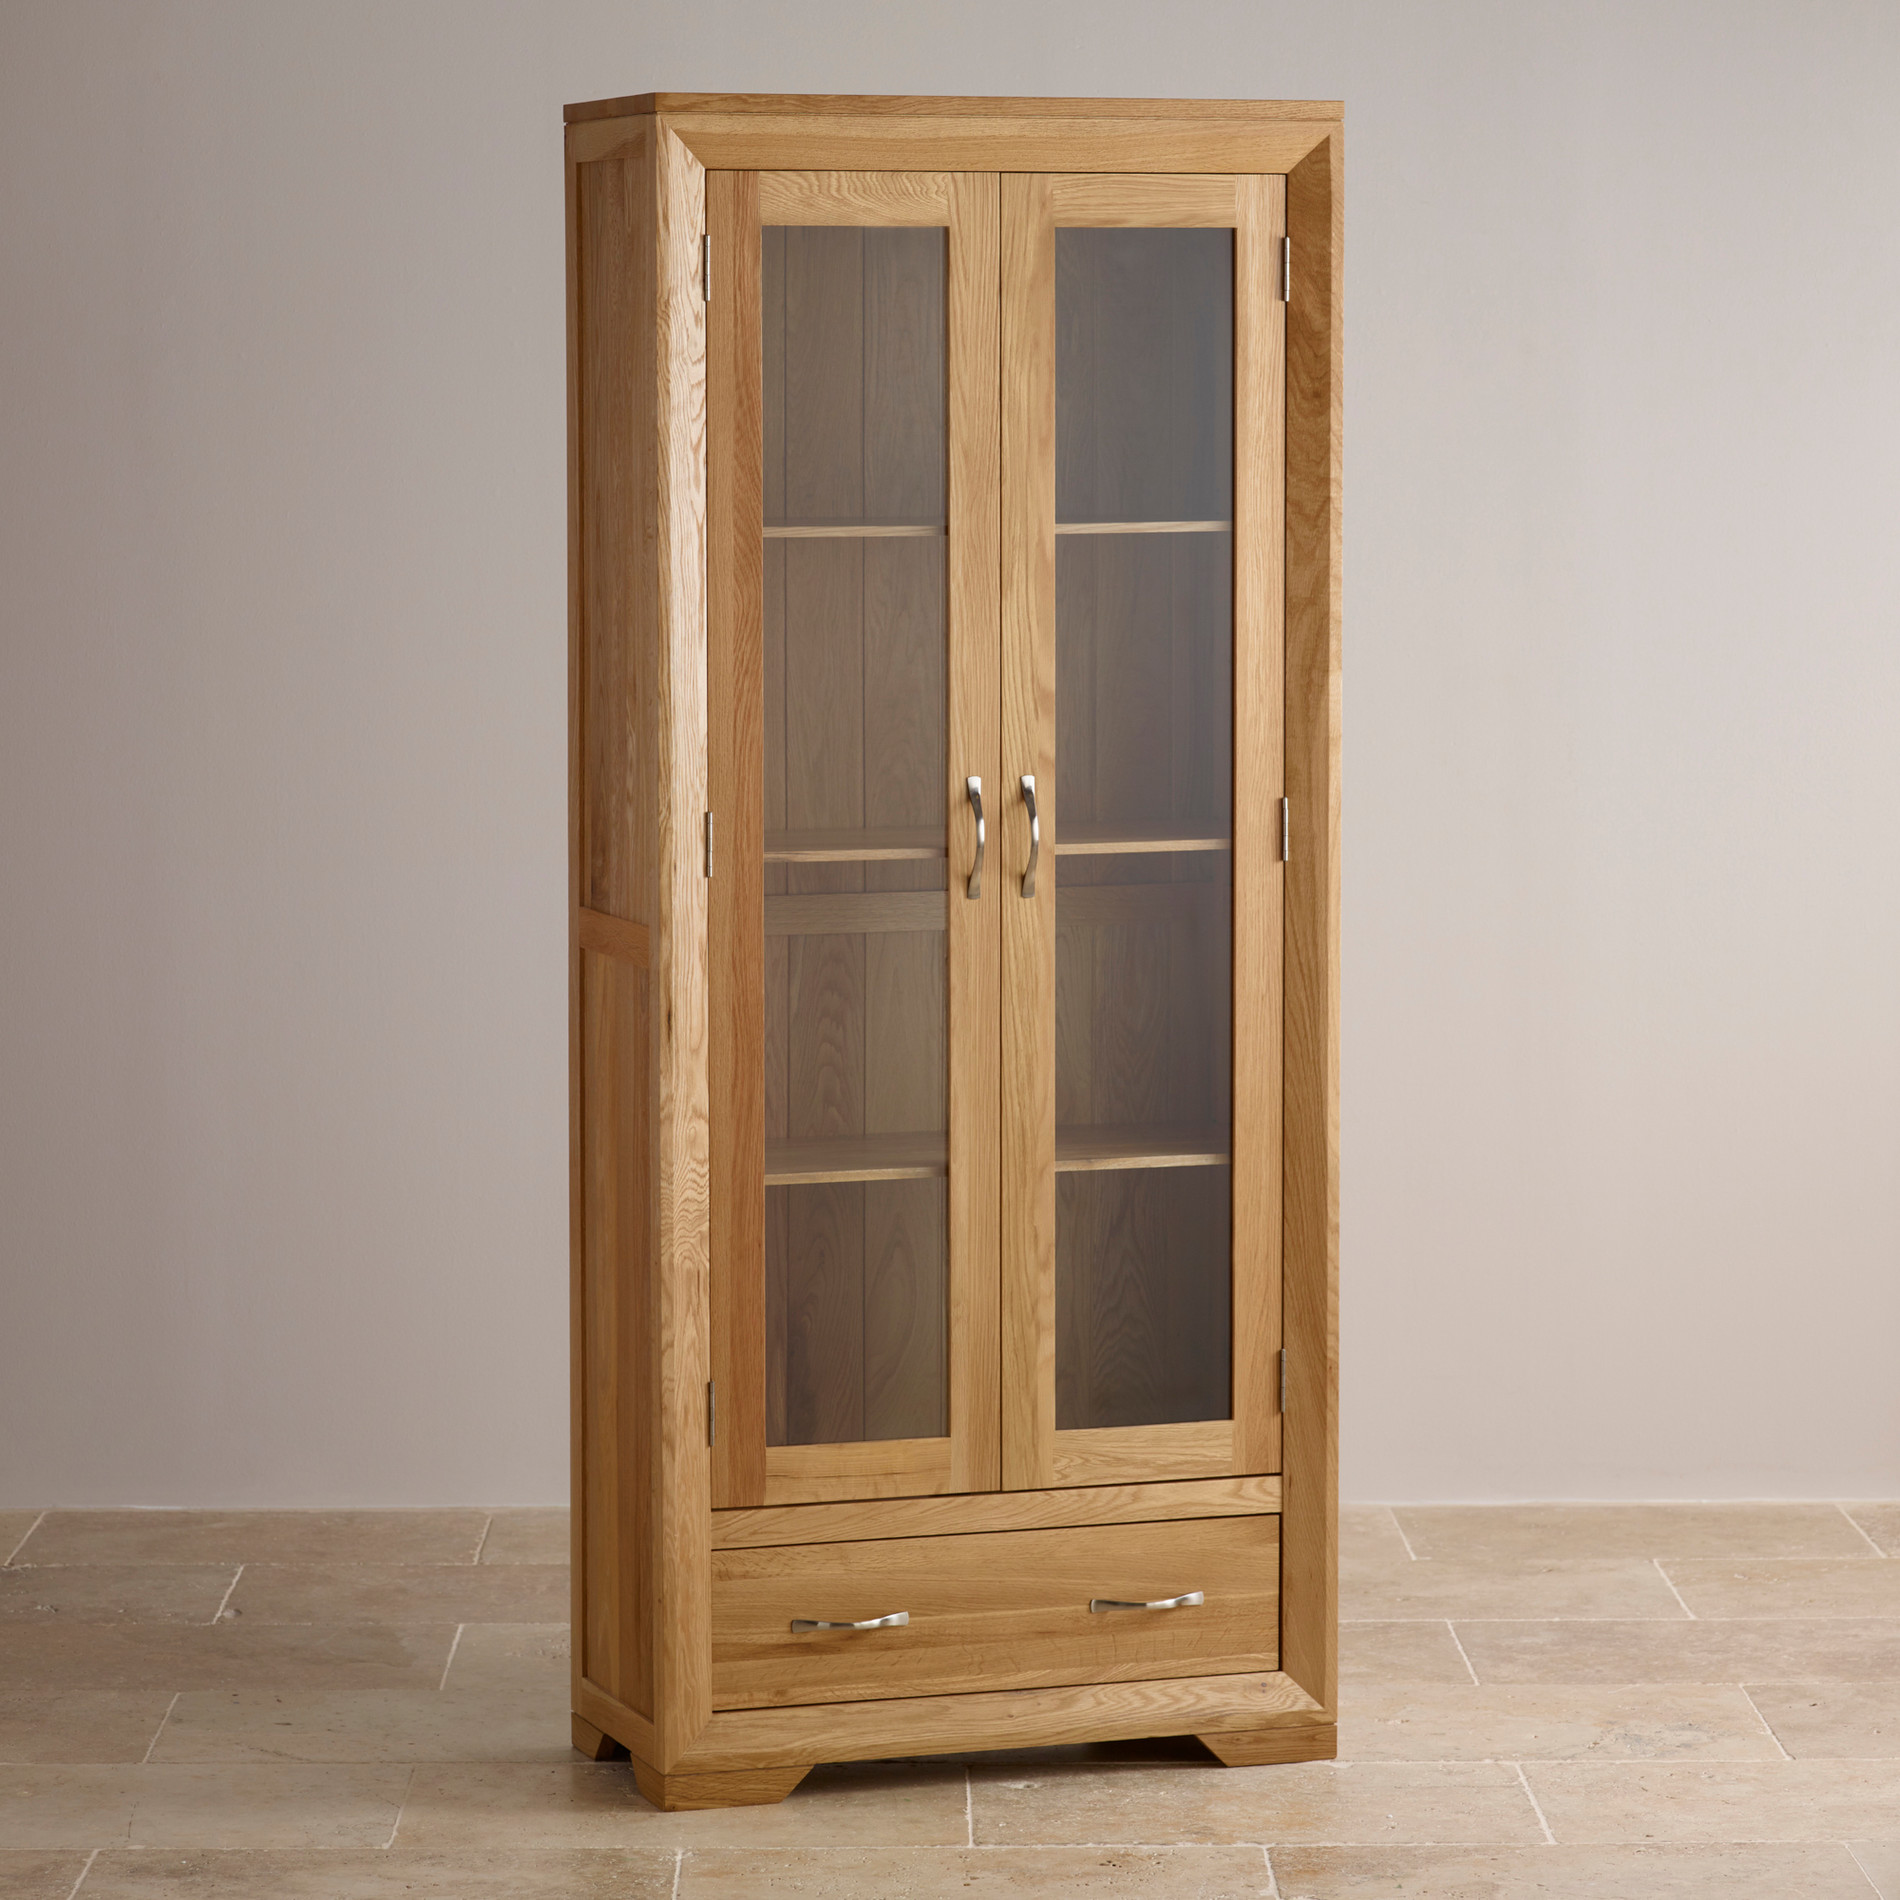 Dining Room Sets For Less Bevel Glazed Display Cabinet In Solid Oak Oak Furniture Land